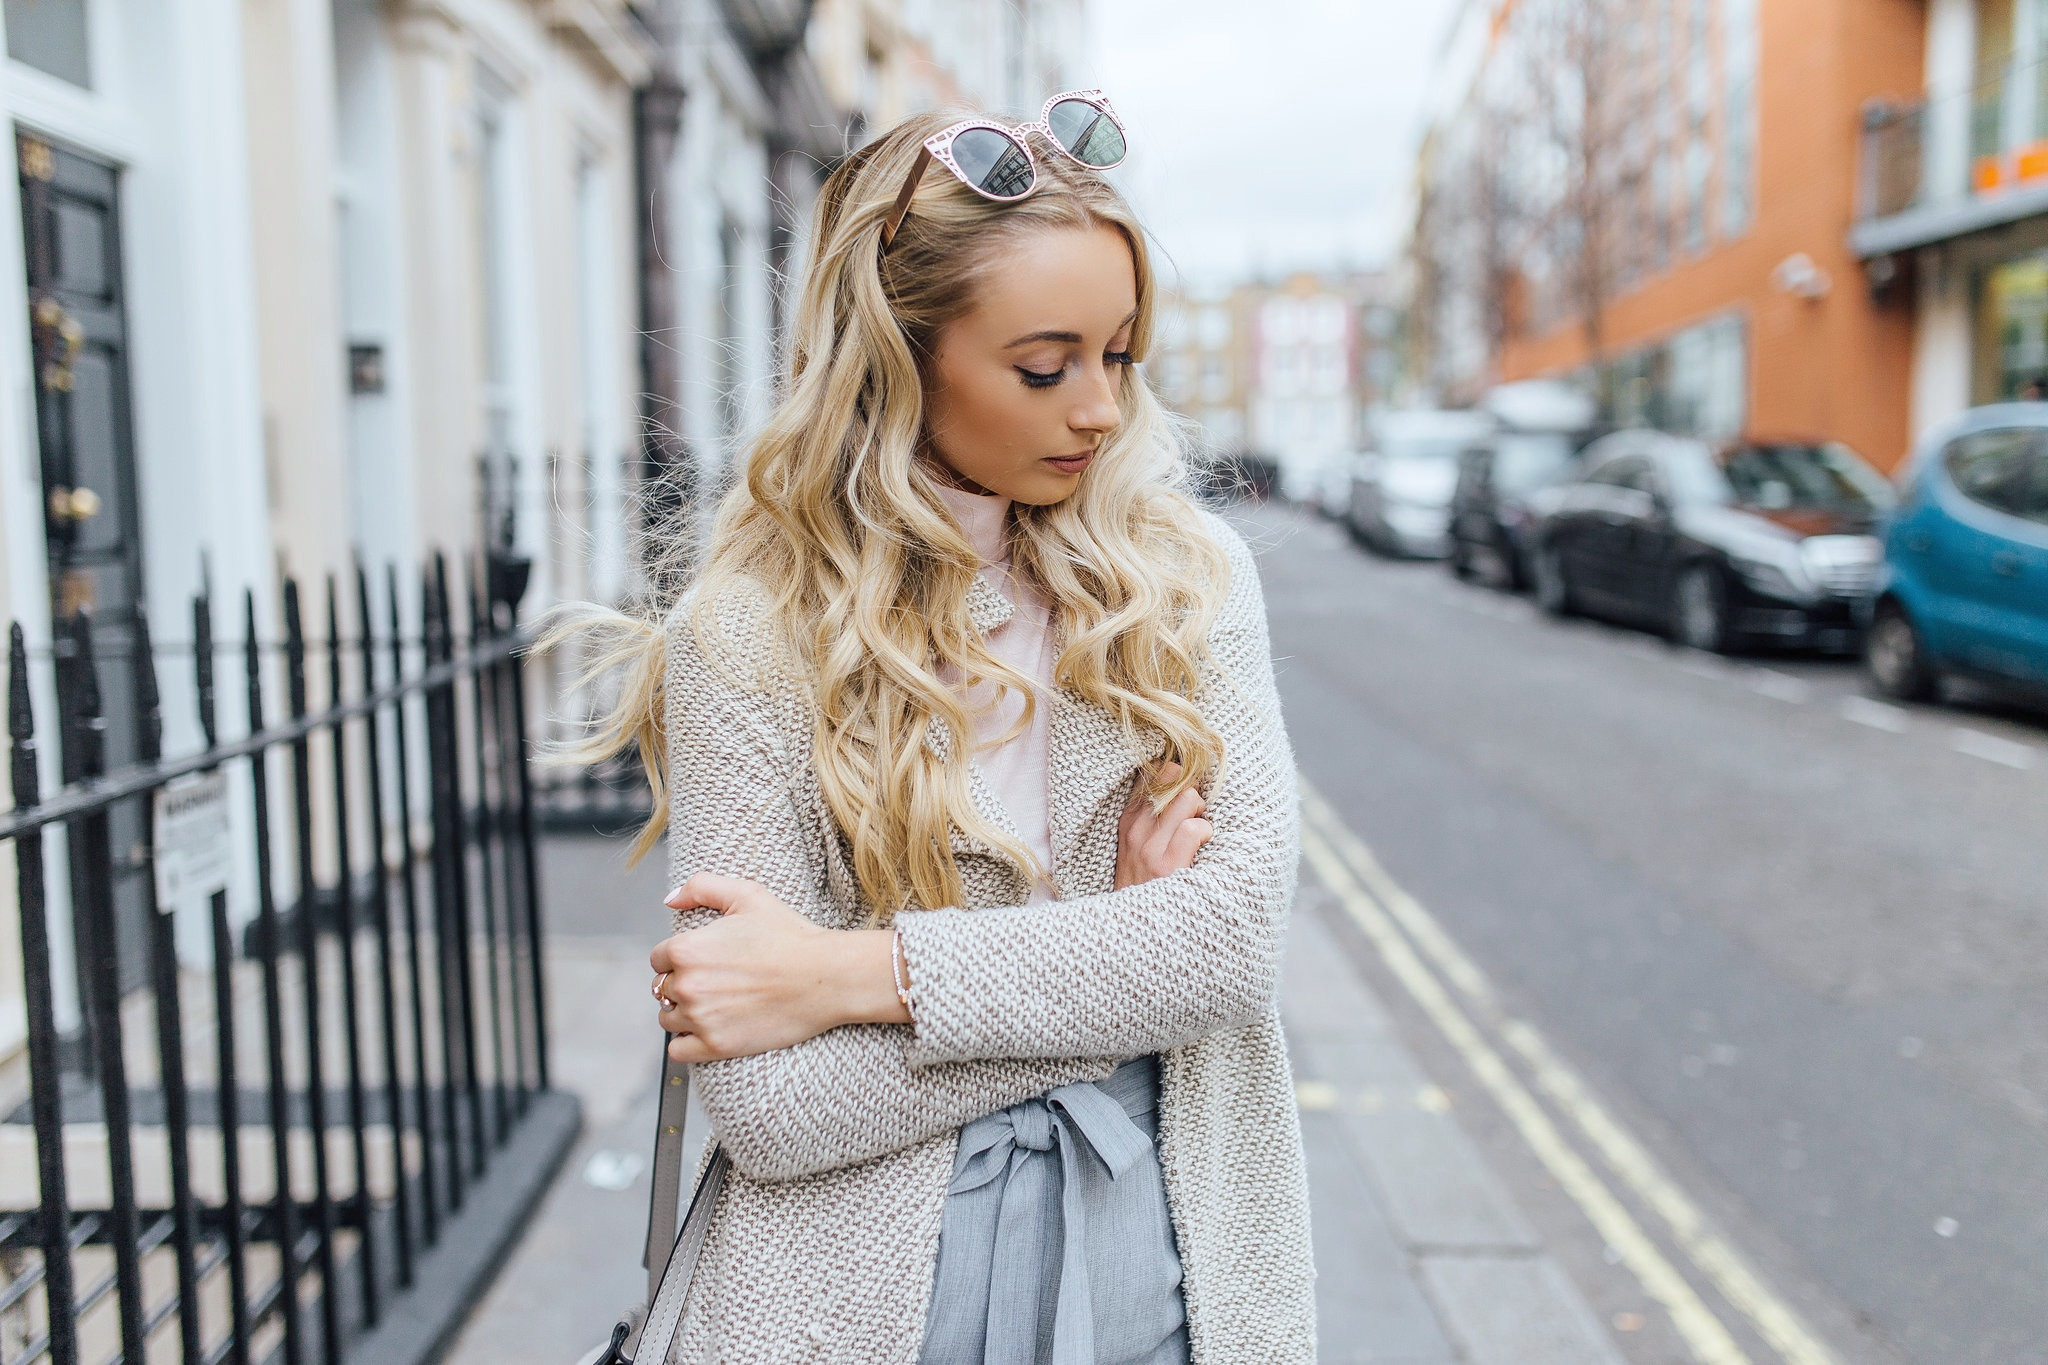 London Fashion Week Day One #ootd fashion mumblr 1